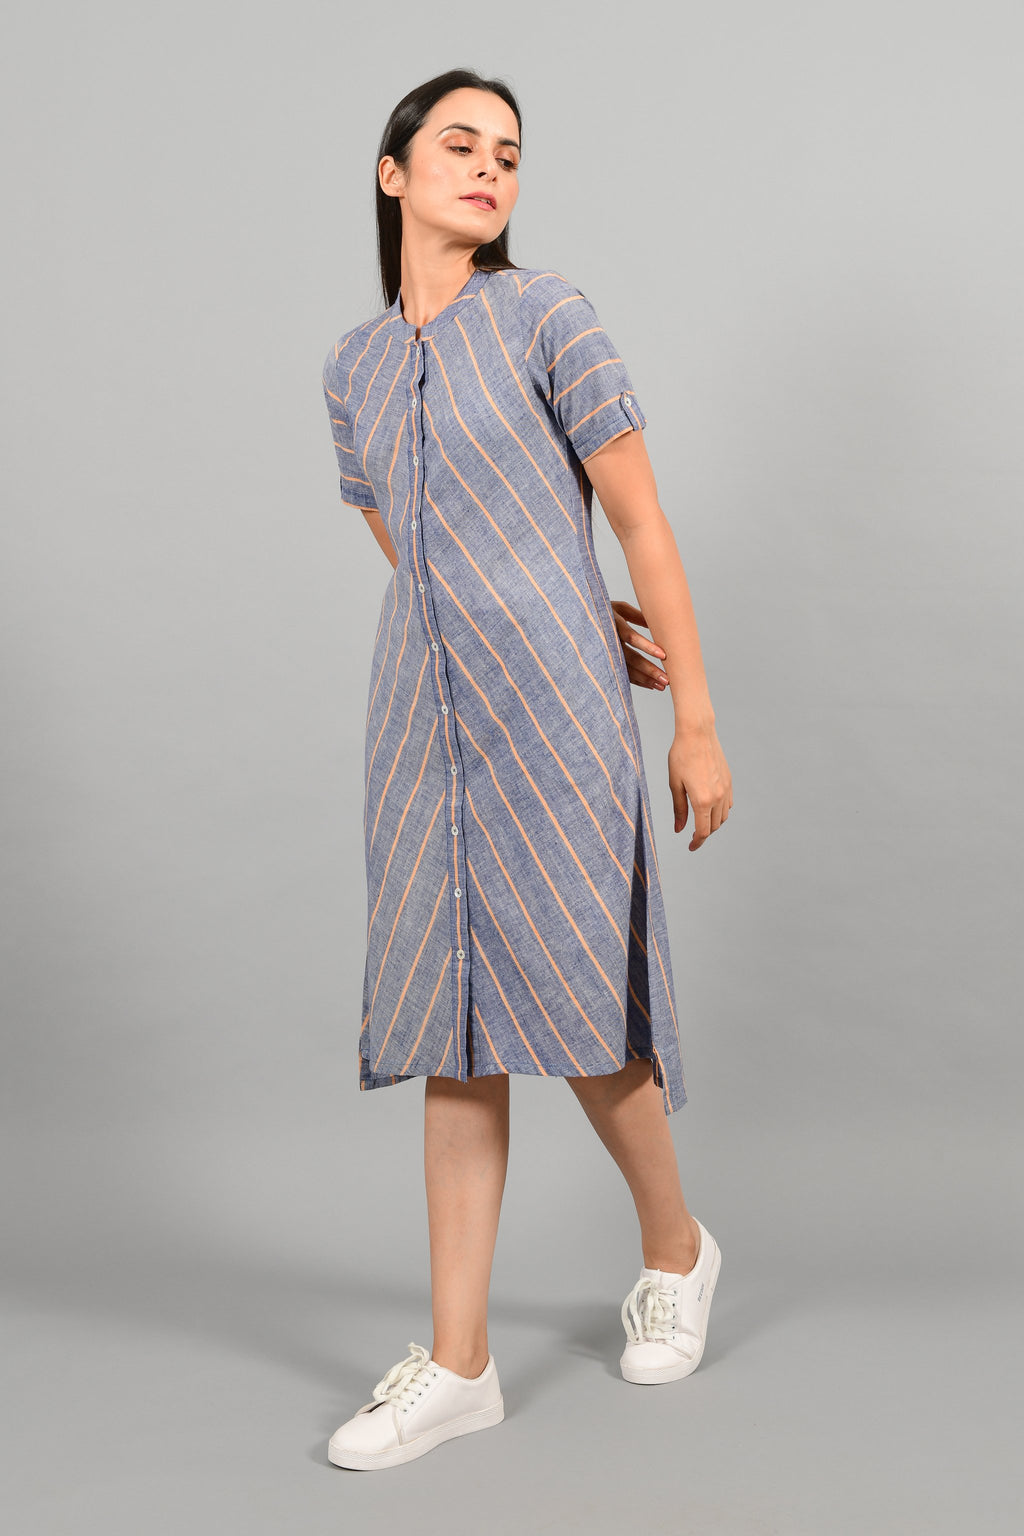 Side pose of an Indian female womenswear fashion model in a Blue chambray with orange stripes handspun and handwoven khadi cotton dress-kurta by Cotton Rack.